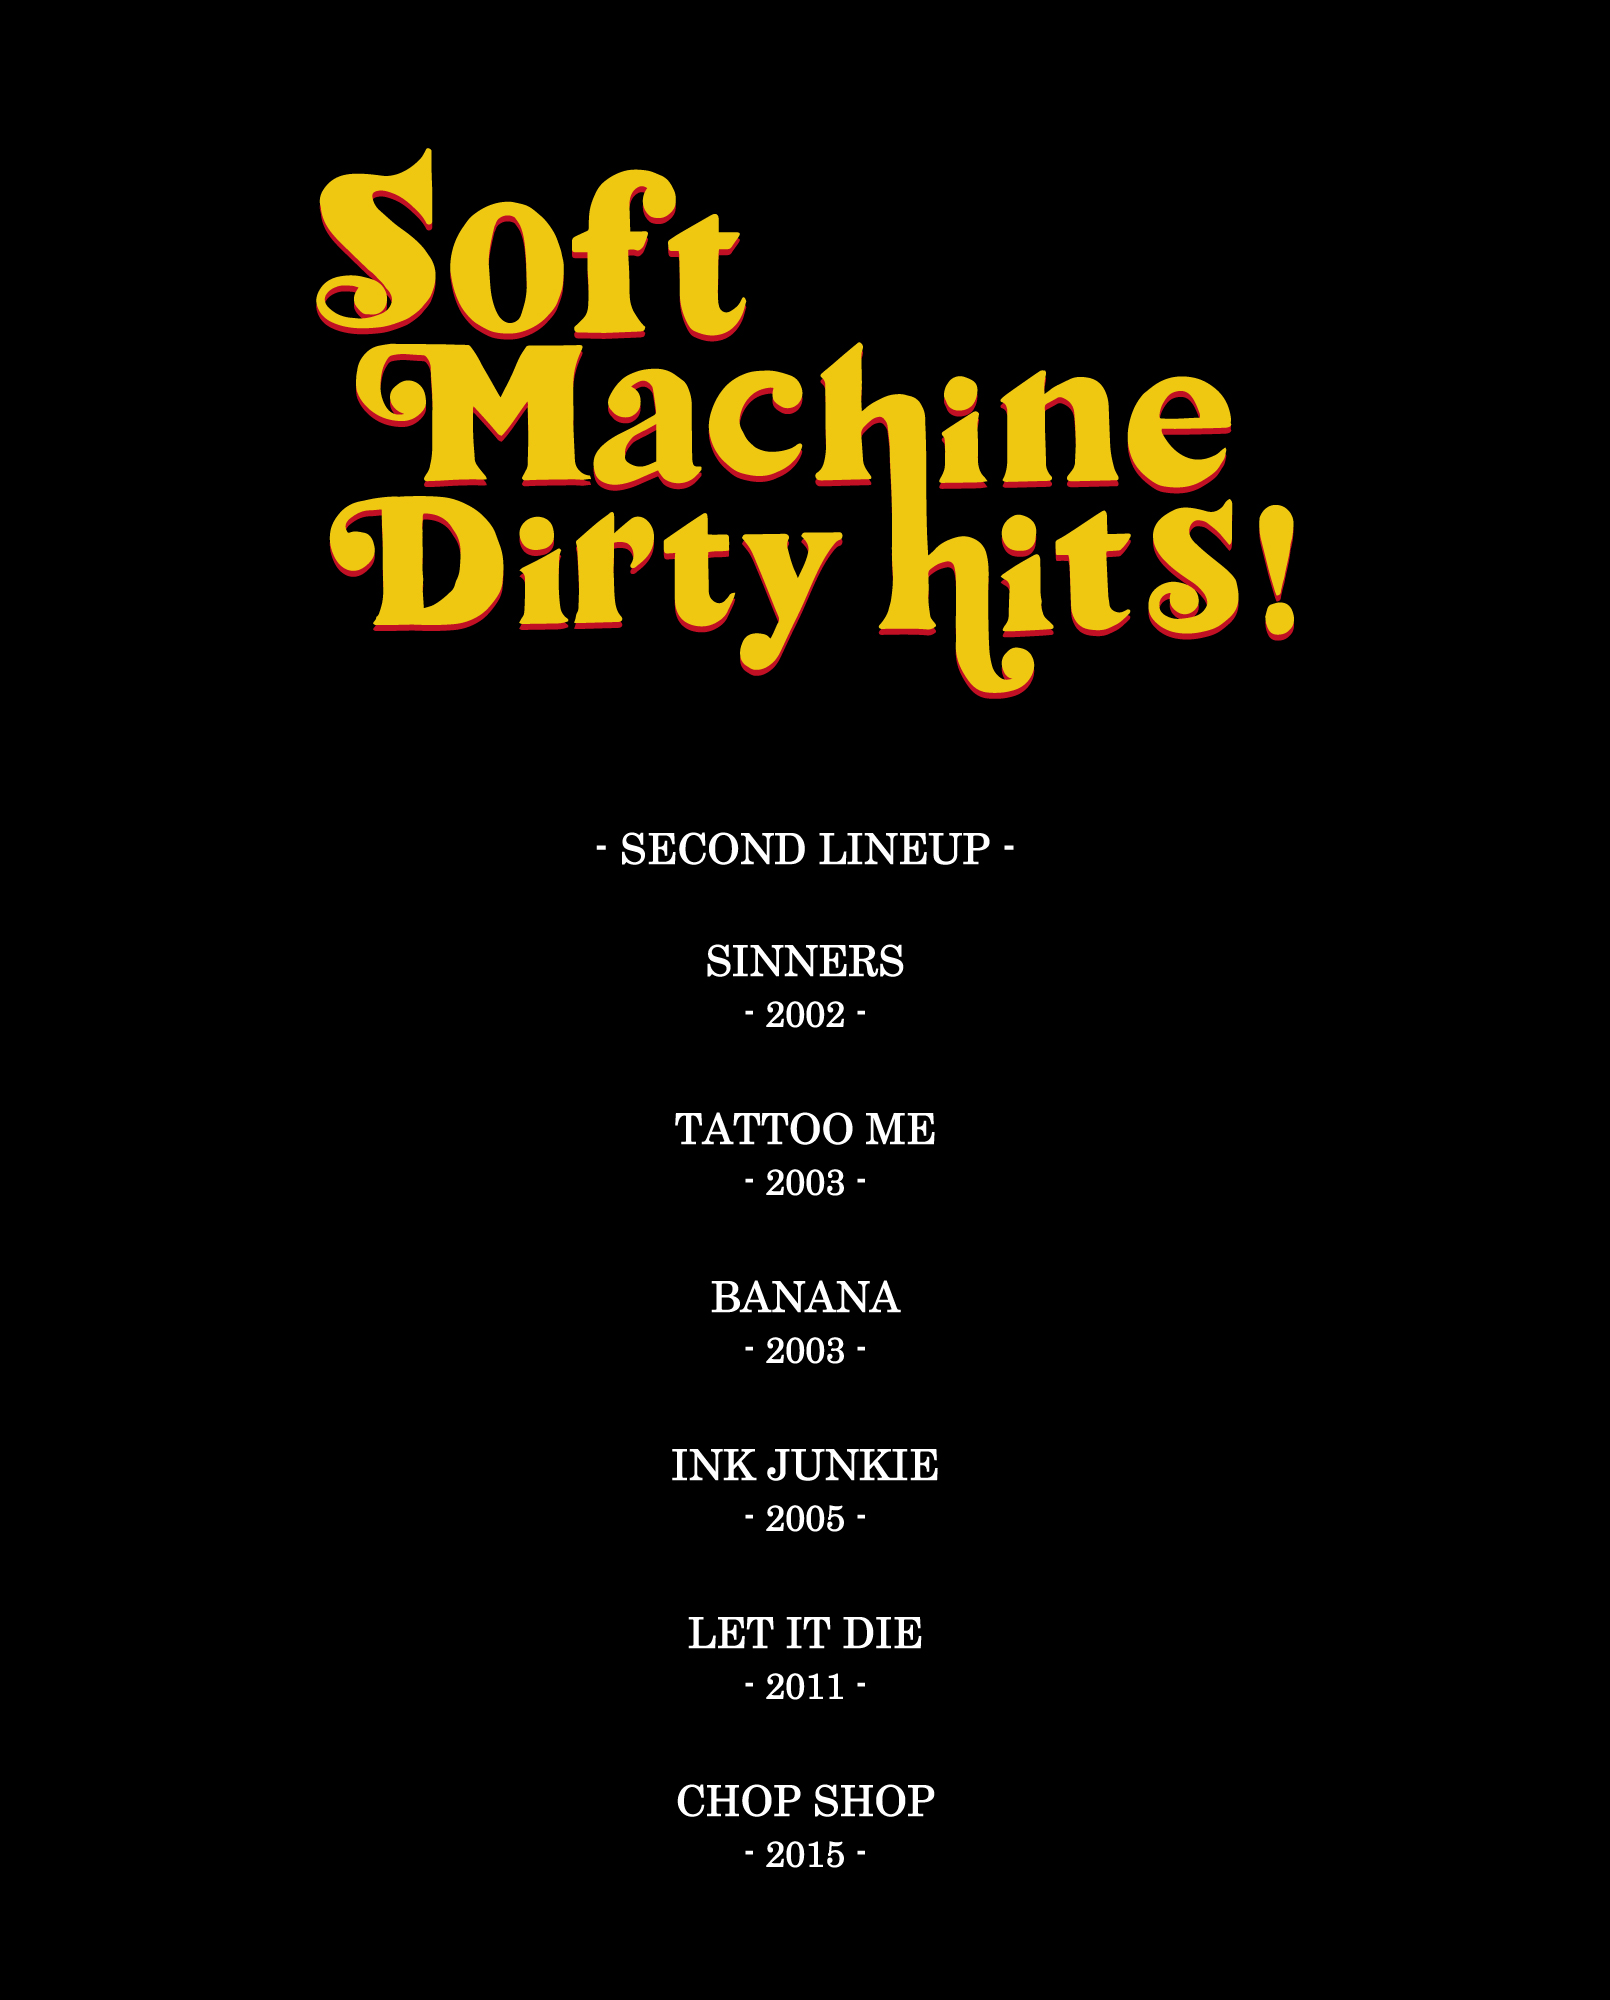 SOFTMACHINE DIRTY HITS